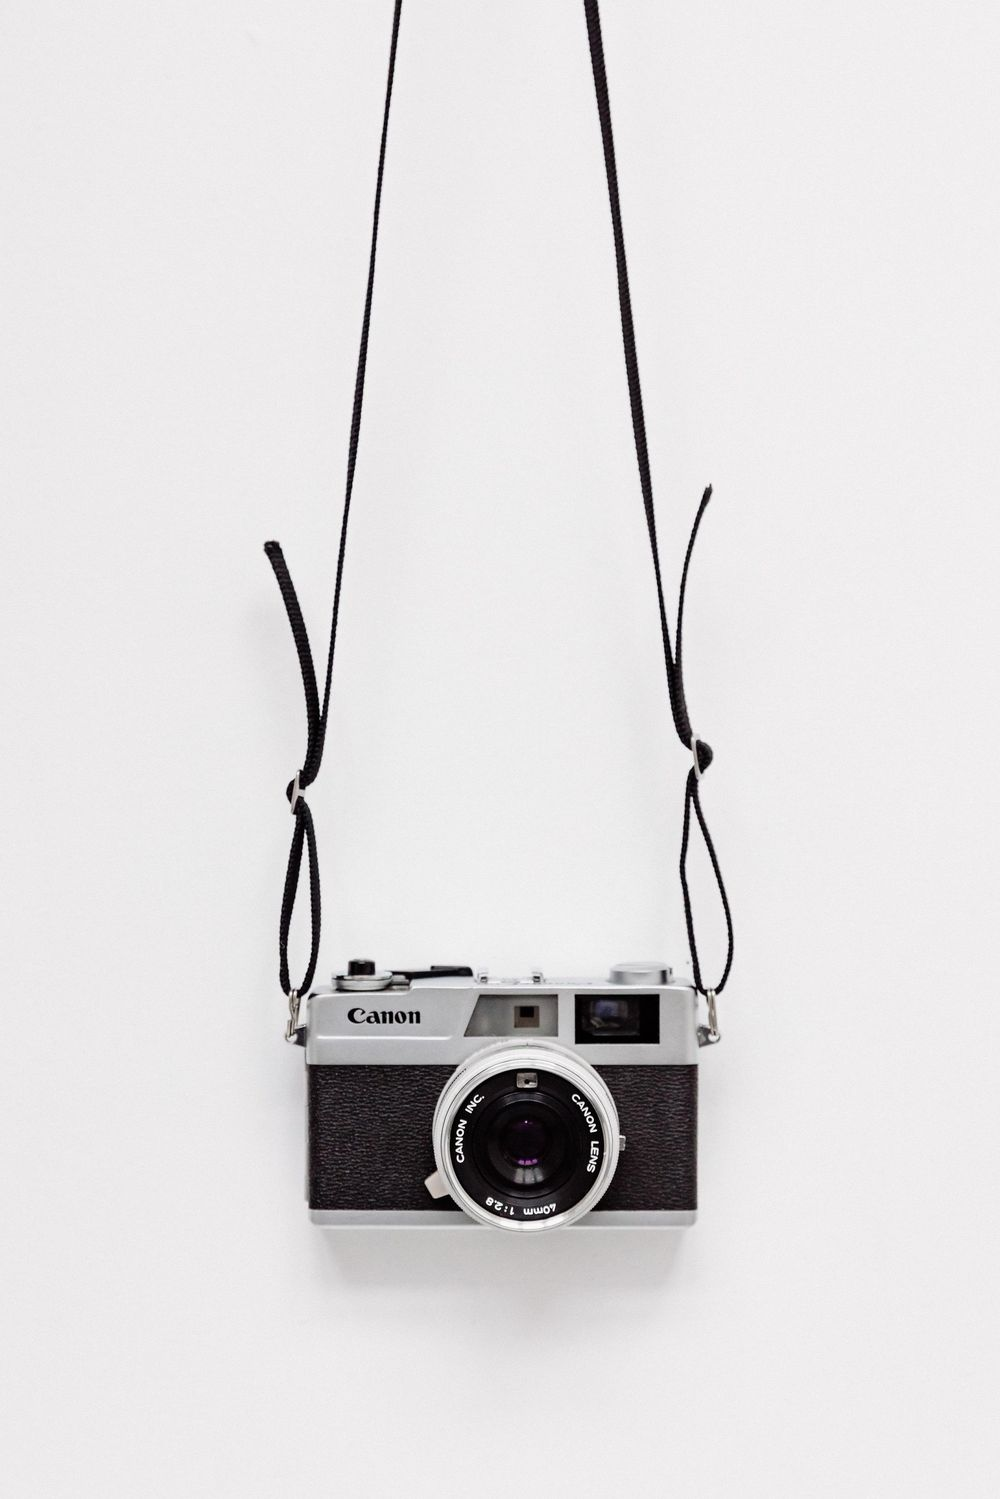 Minimalist White and Black - image 5 - student project